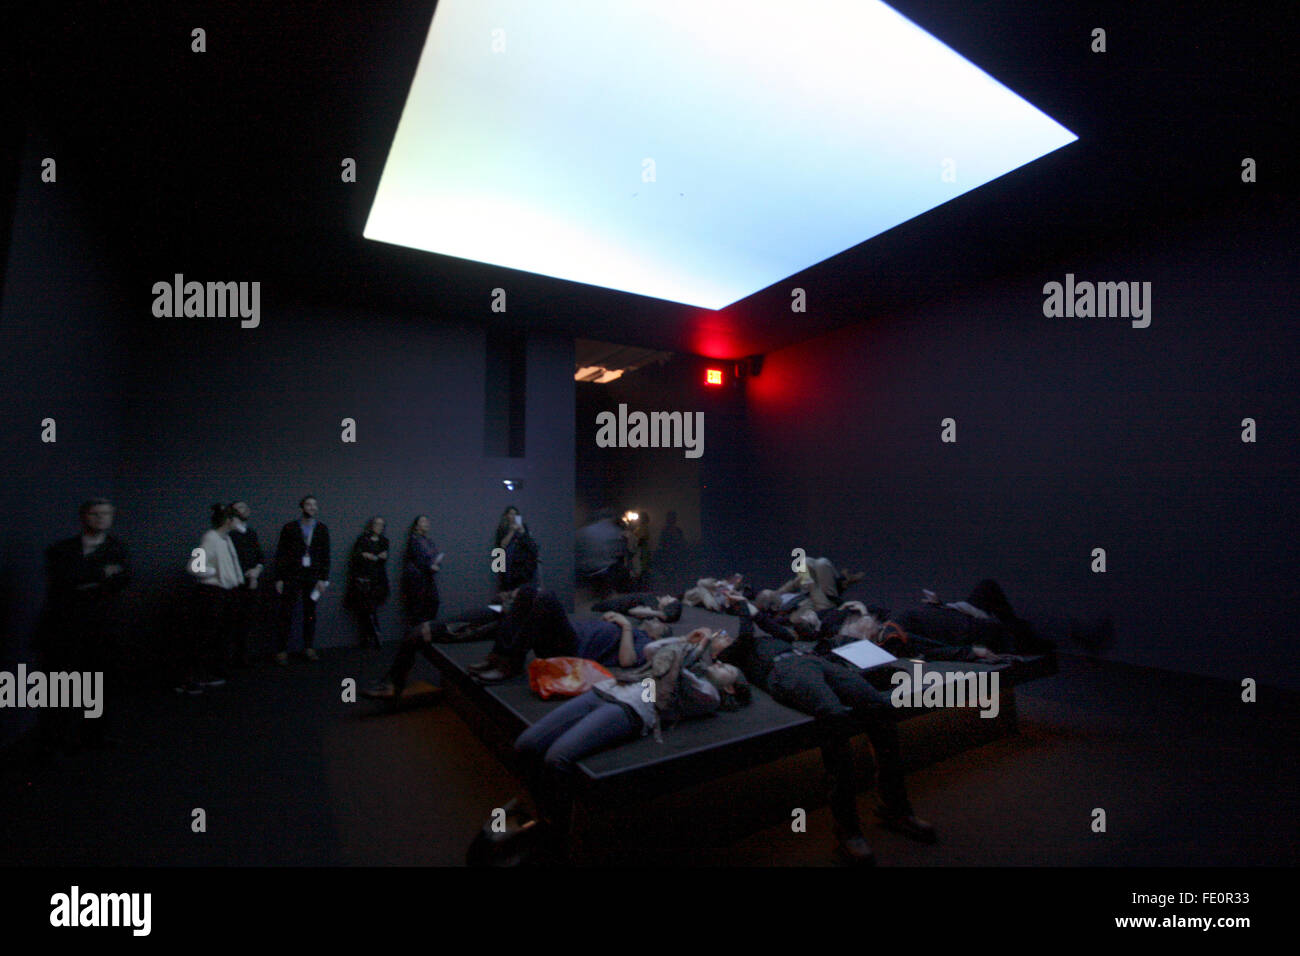 New York City, NY, USA. 3rd February, 2016. Visitors lying on a bed like platform, while overhead images of the - Stock Image